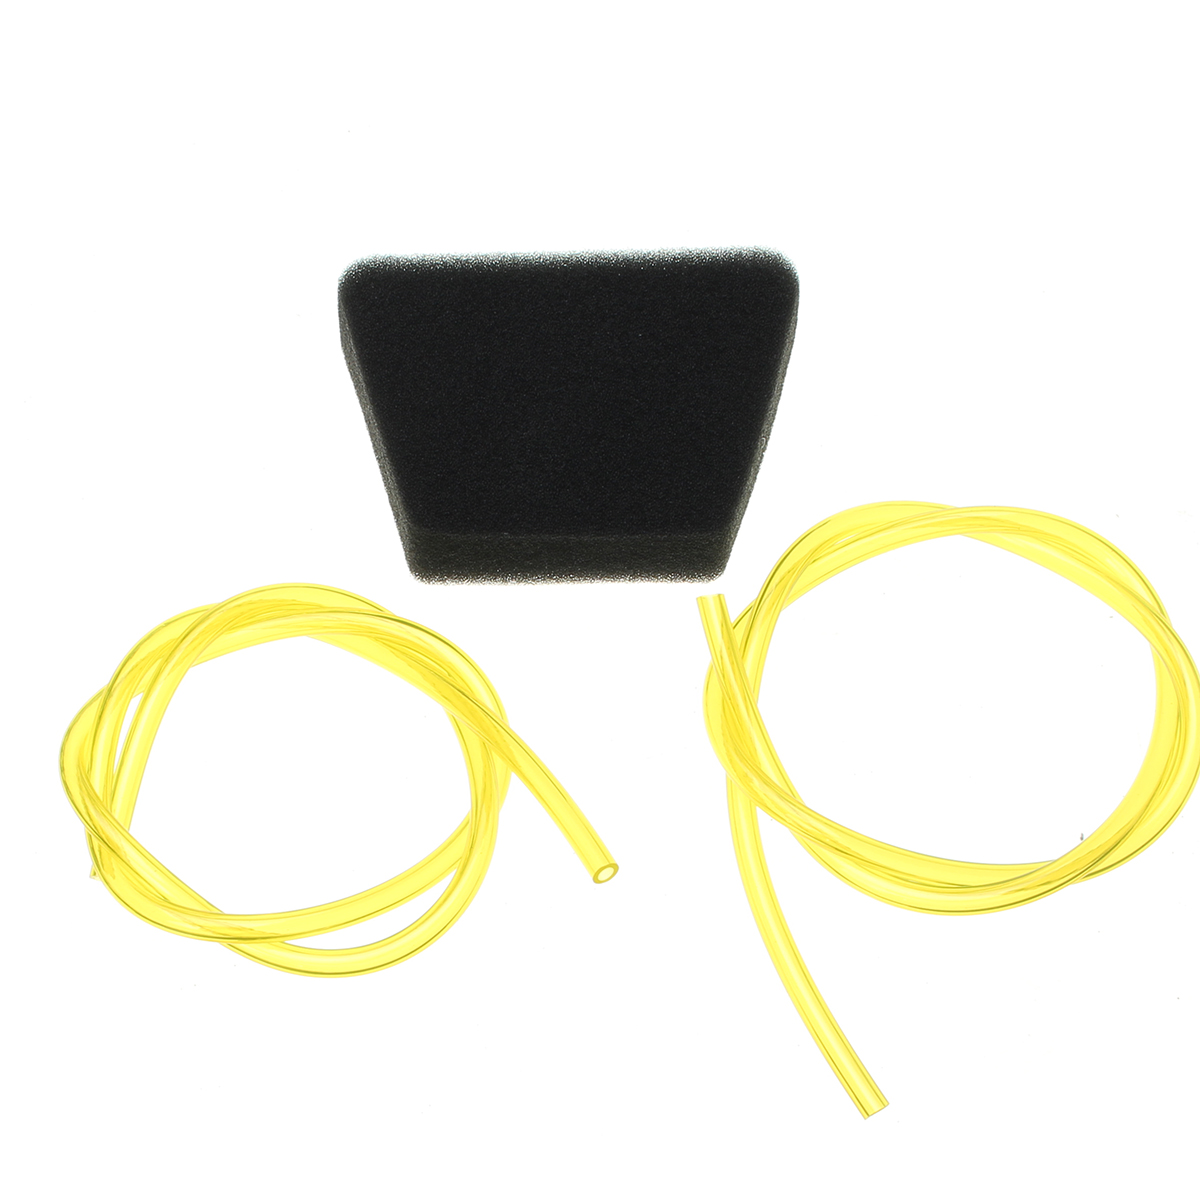 Gardening Chainsaw Fuel Line Air Filter Primer Bulb Sponge Replacement Kit for Poulan Craftsman